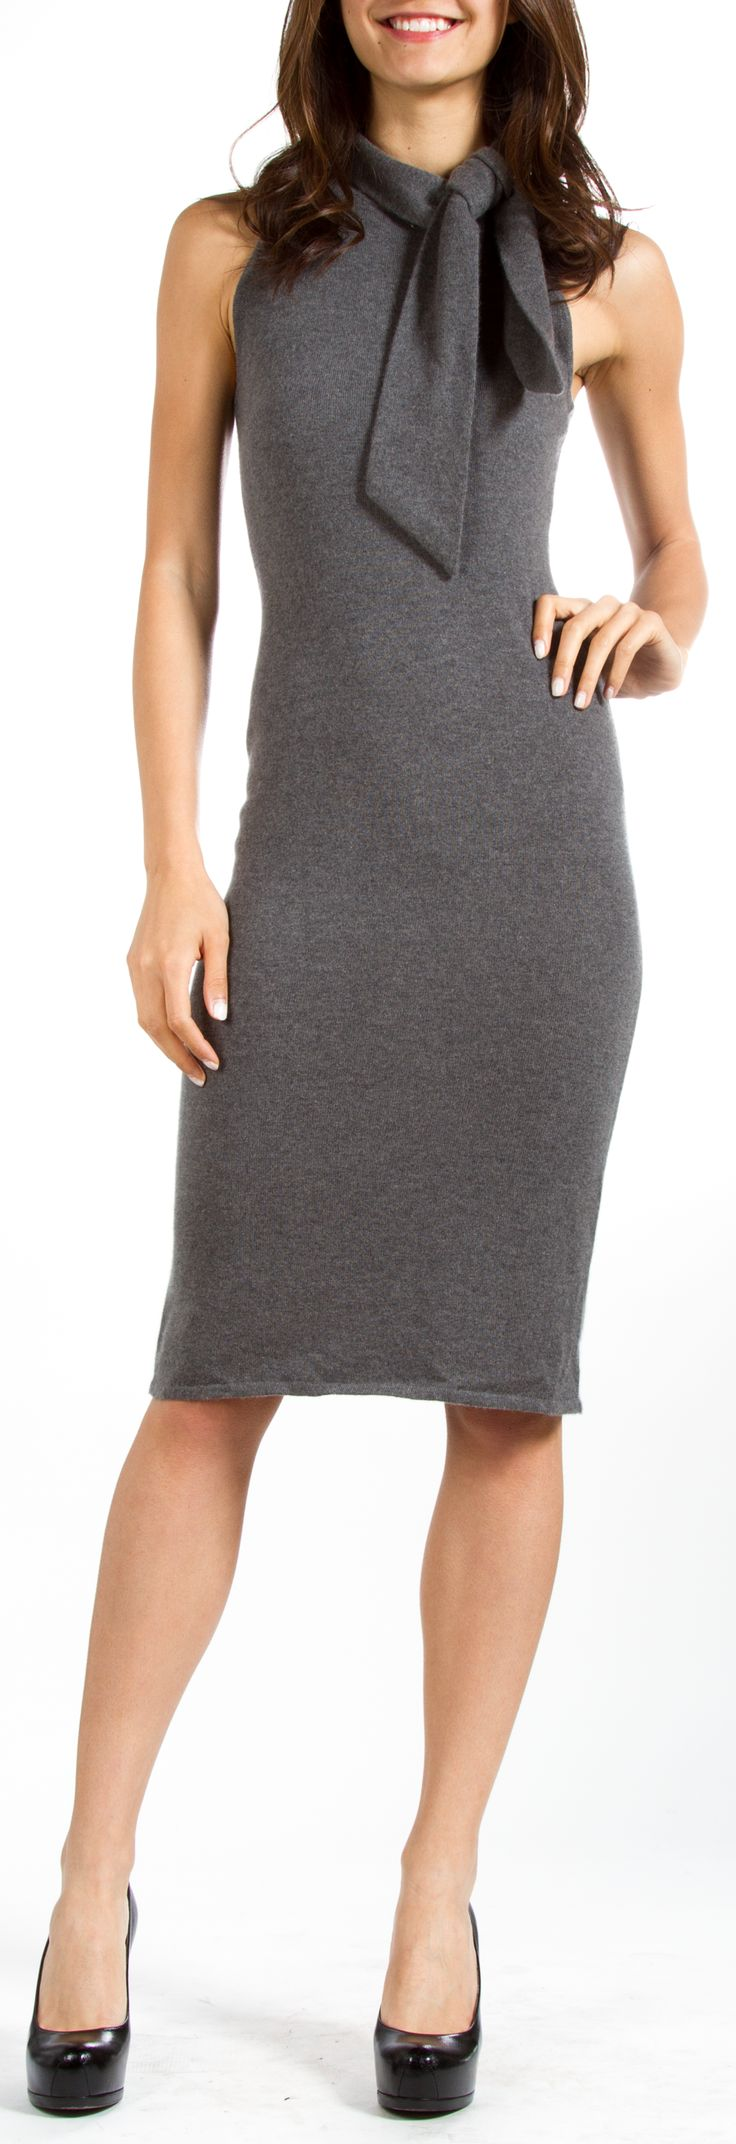 RALPH LAUREN DRESS @SHOP-HERS